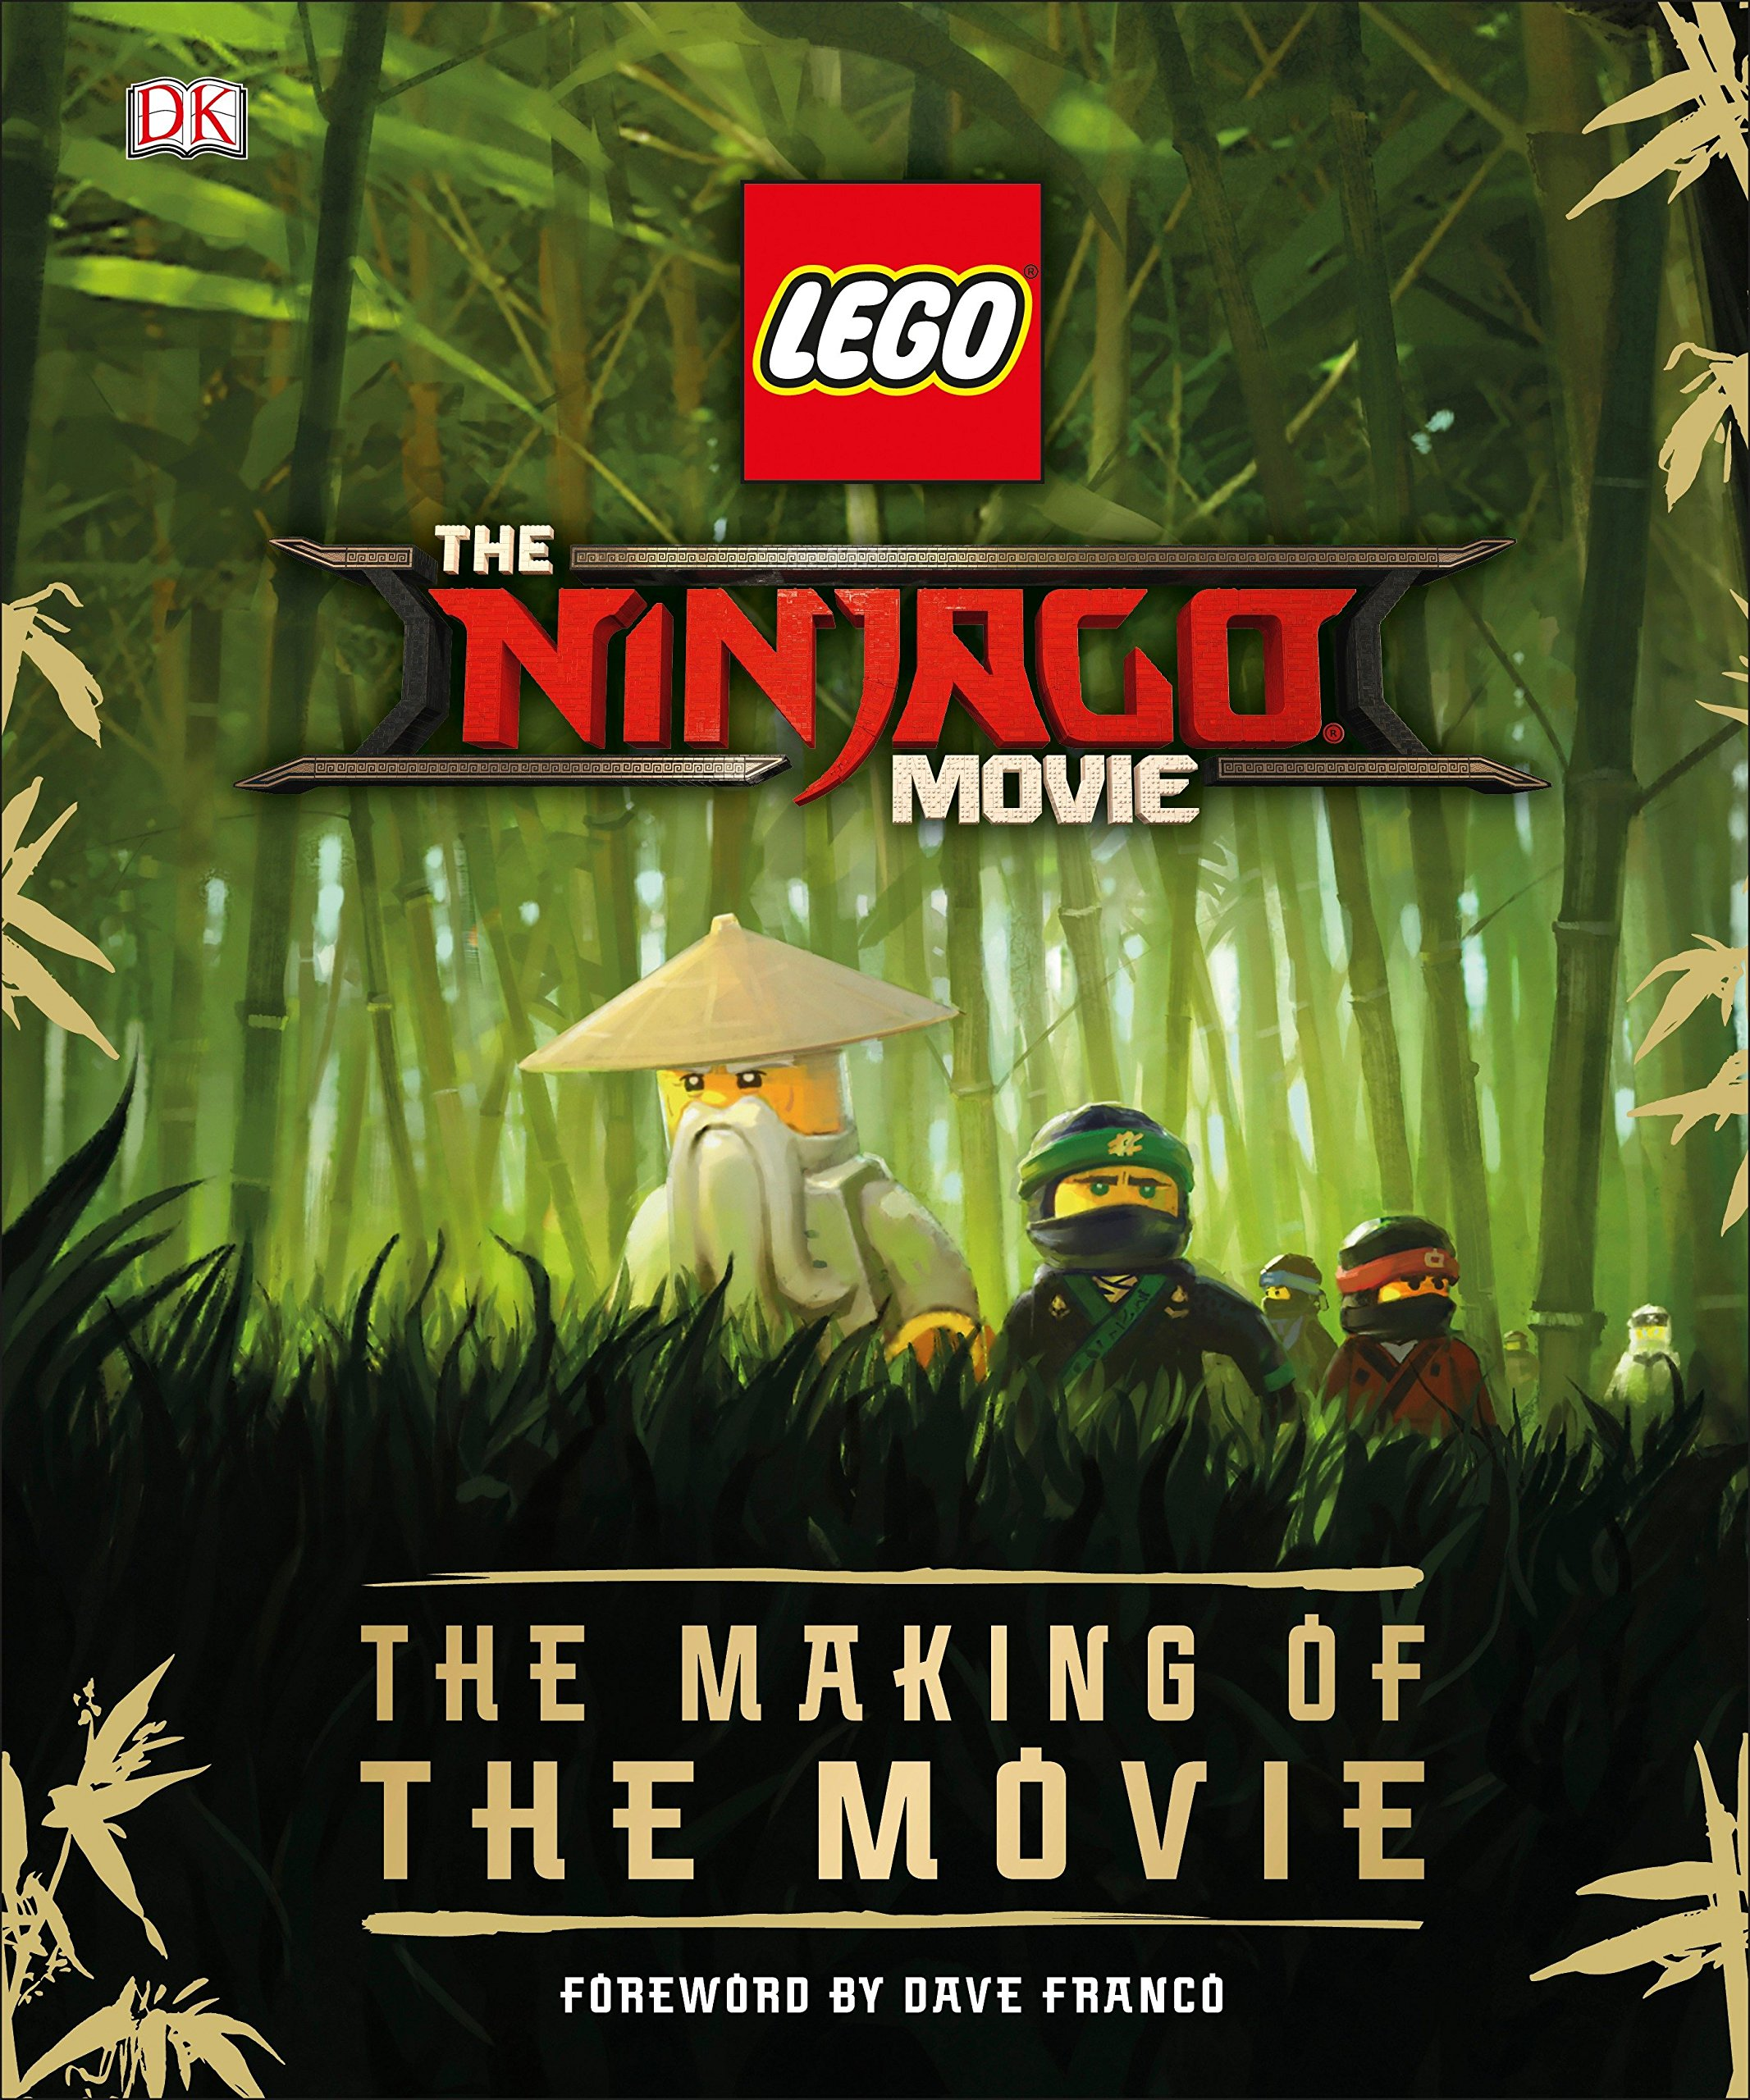 The Lego Ninjago Movie The Making Of The Movie Miller Zarneke Tracey 9781465461186 Amazon Com Books